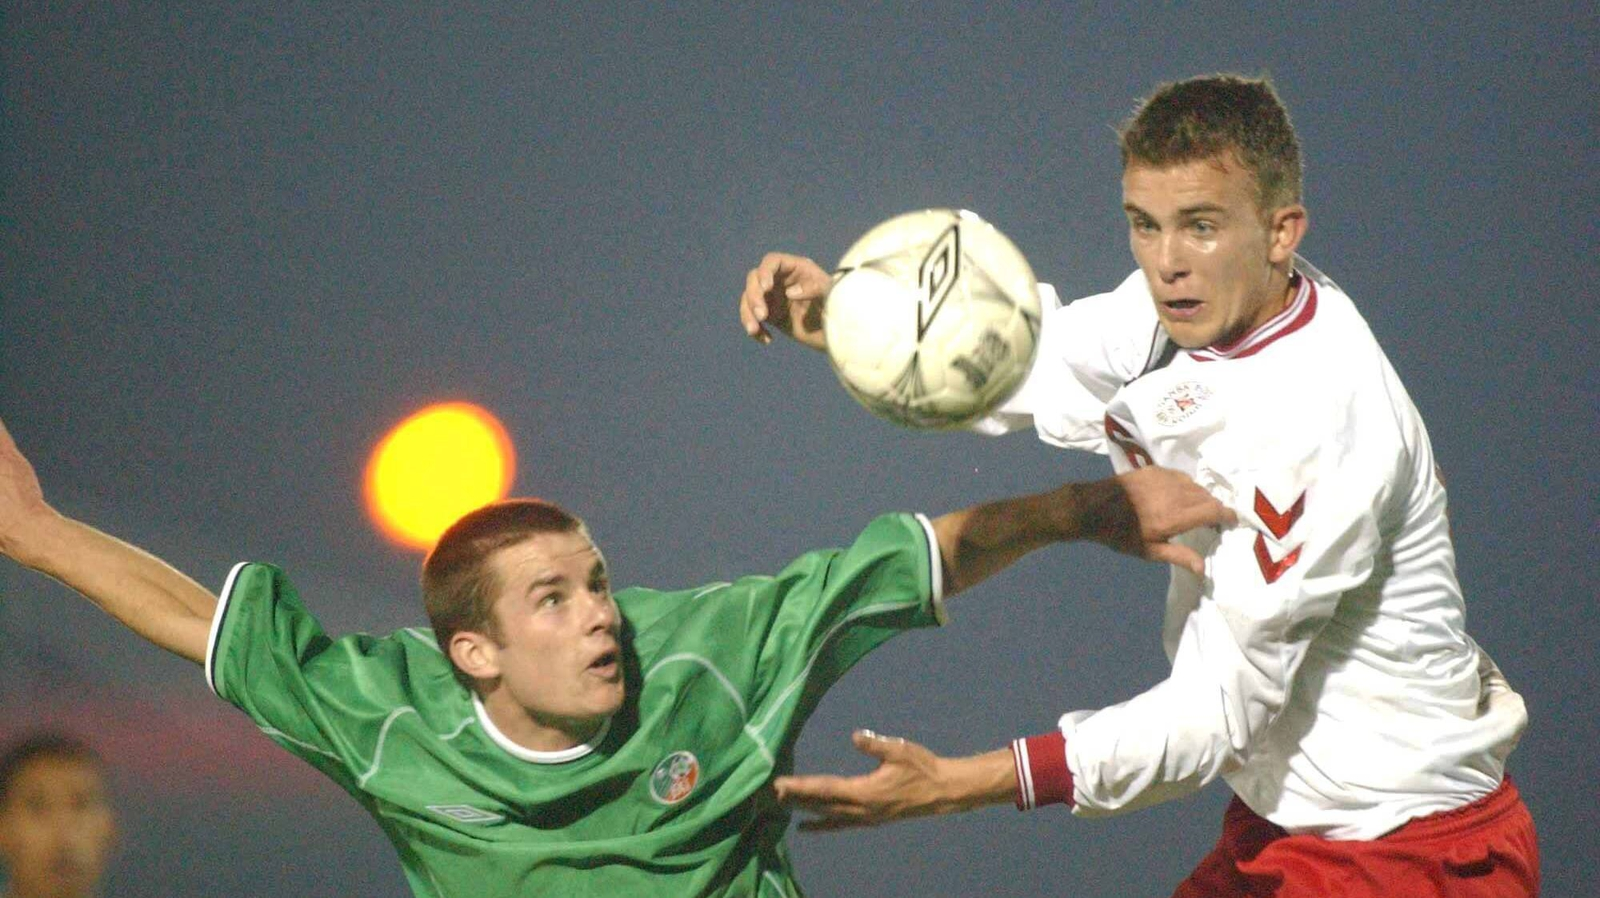 Image - In March 2002, Doyle (l) would win another U21 cap, coincidentally against Denmark